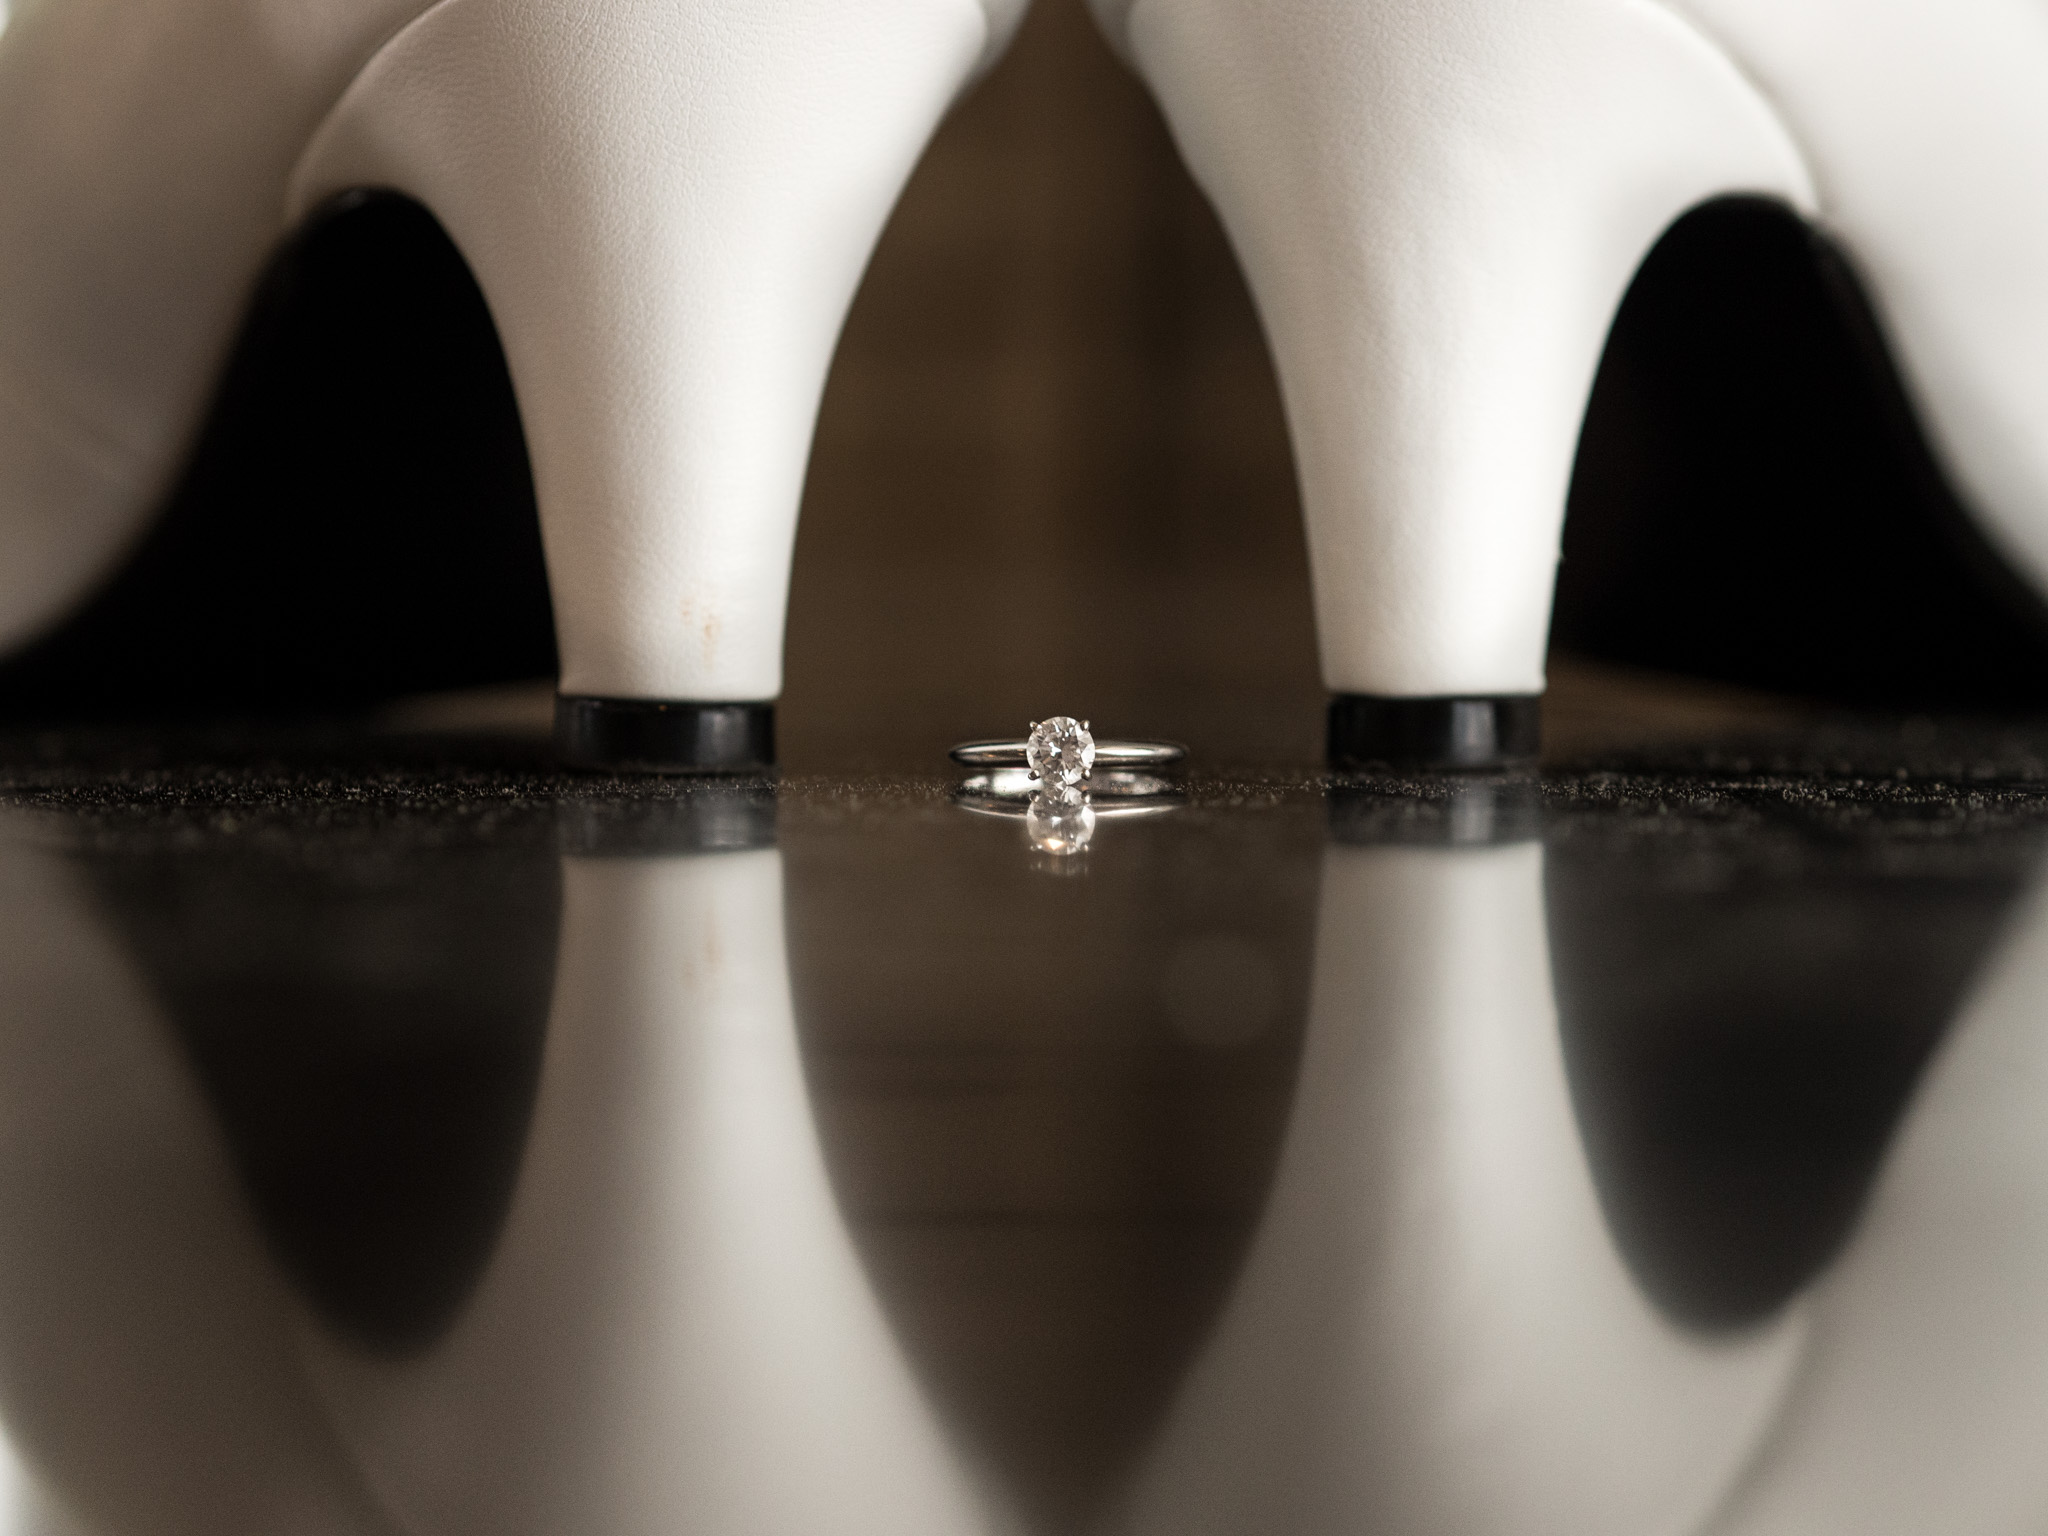 214 Martin Street, Wedding Photography, Shoes, Engagement Ring, Ring Shot, Detail, Reflections